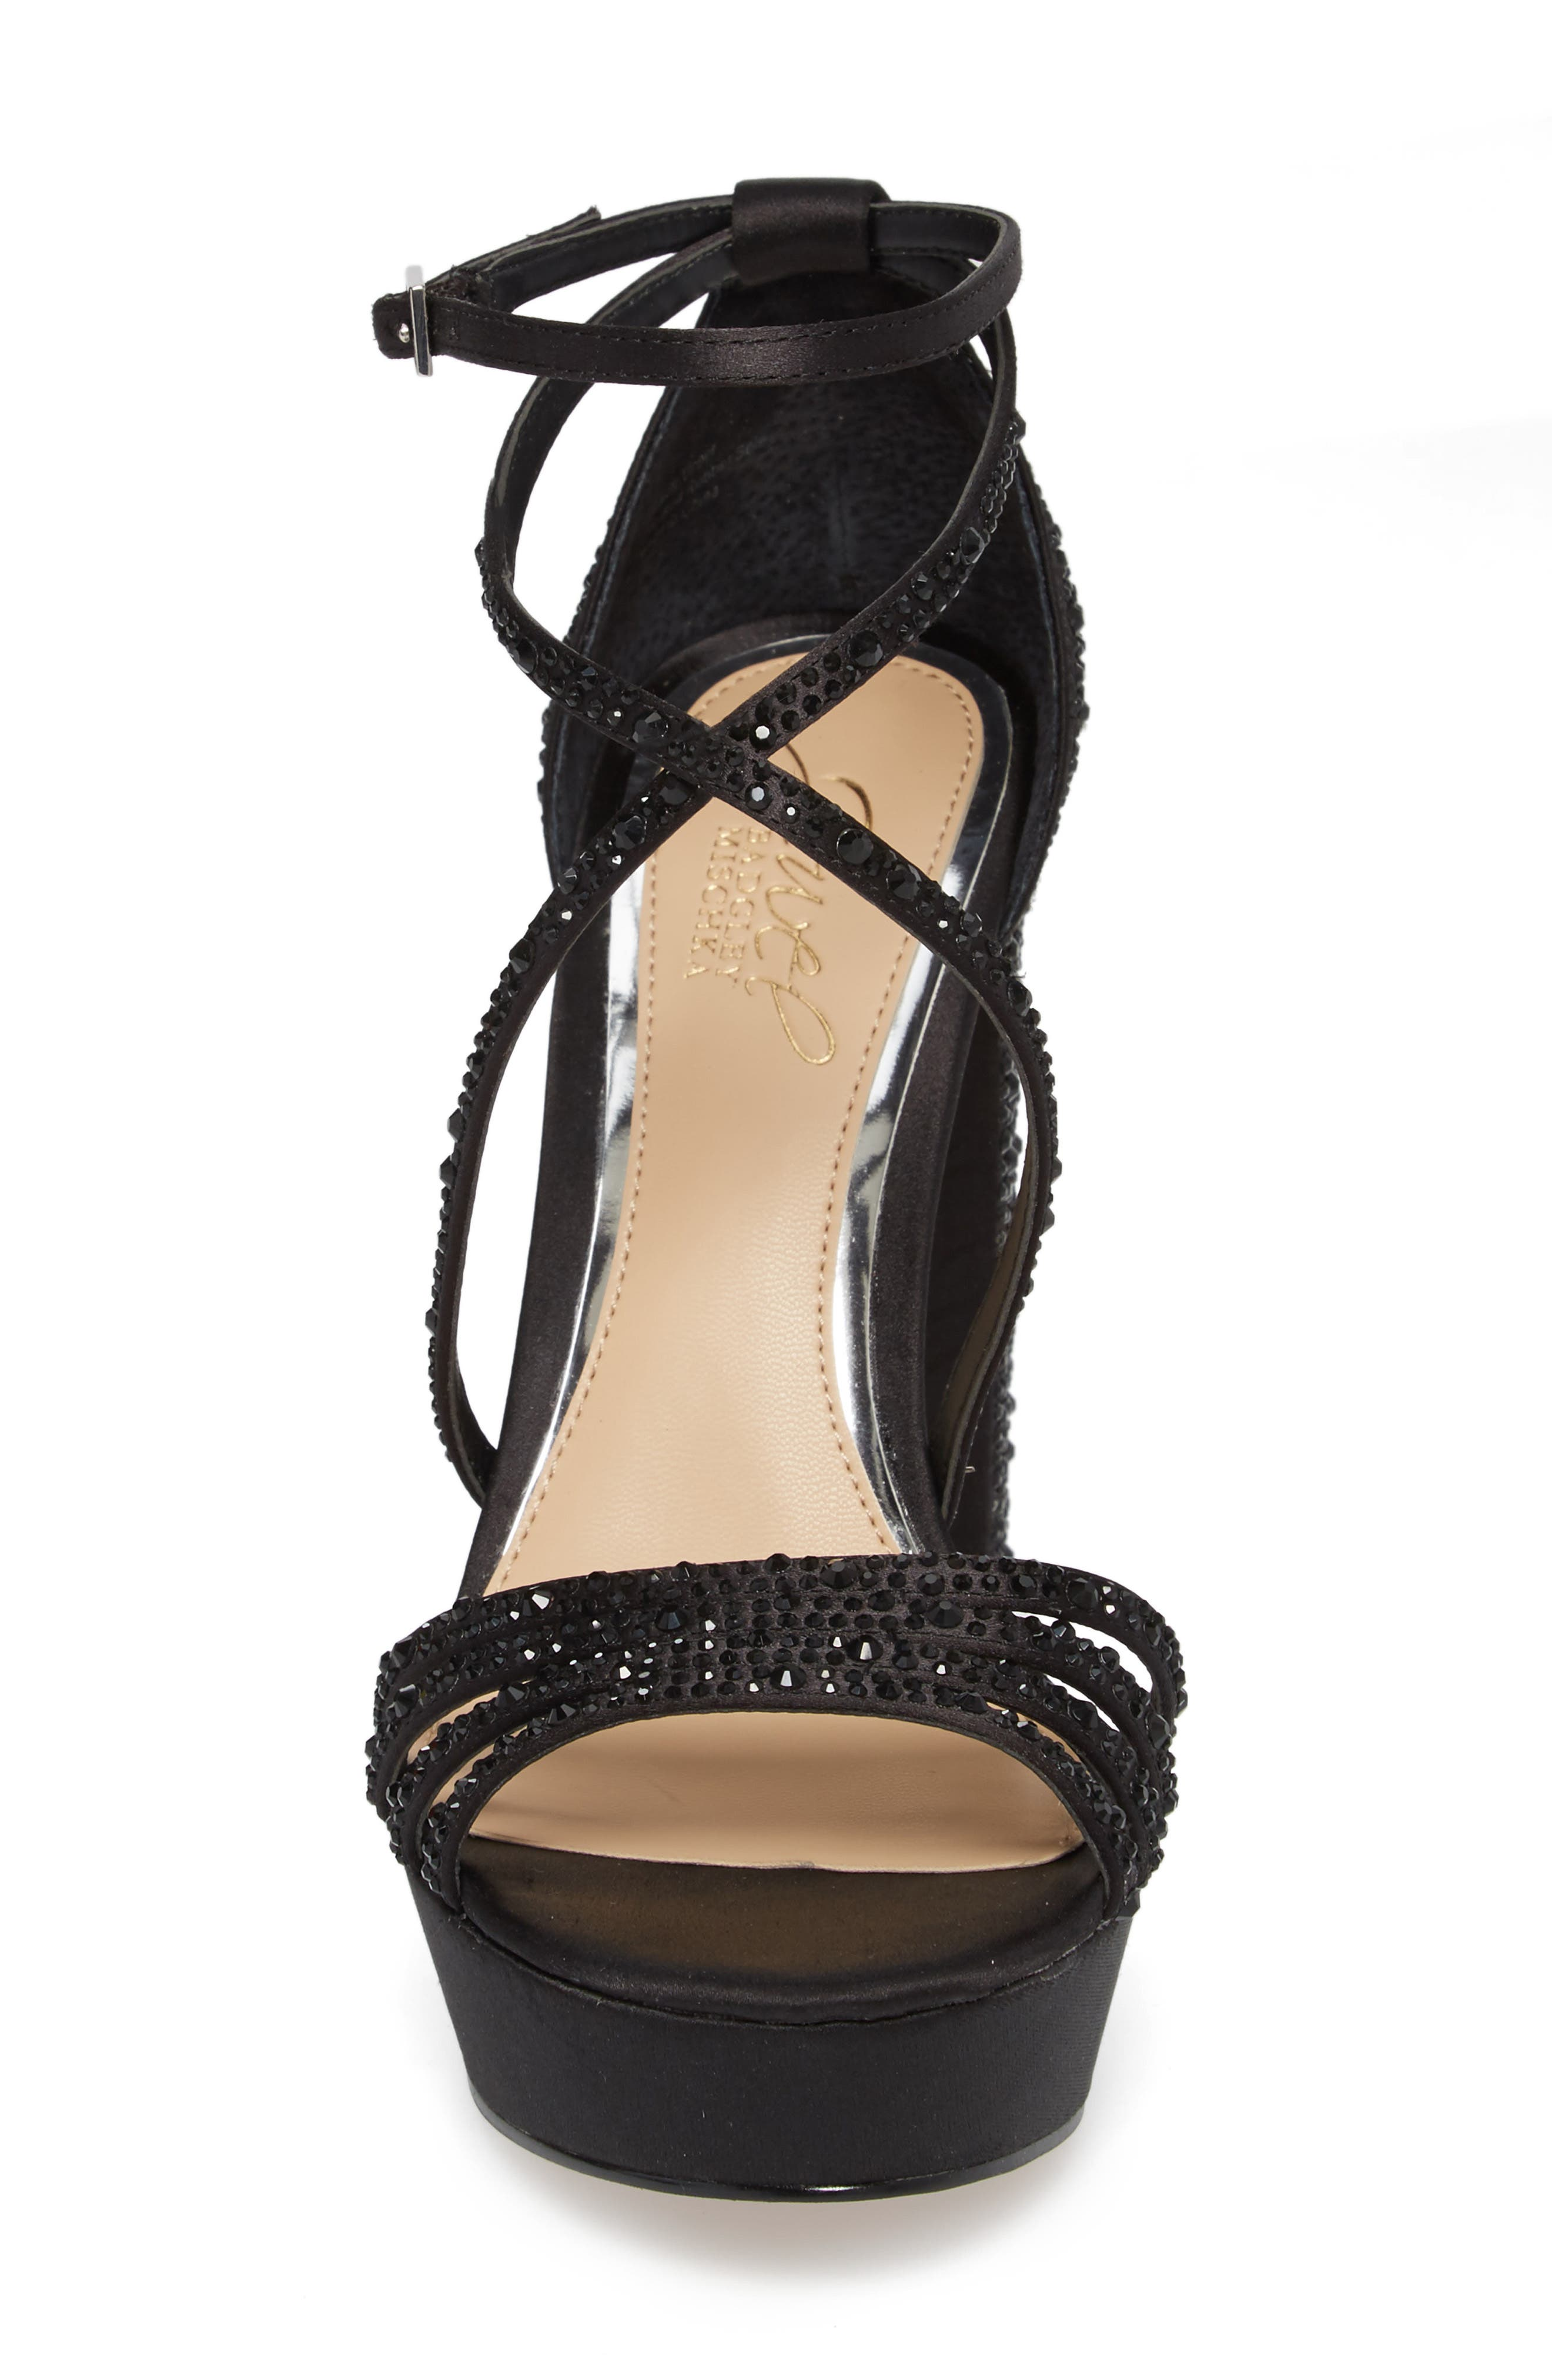 Tarah Crystal Embellished Platform Sandal,                             Alternate thumbnail 10, color,